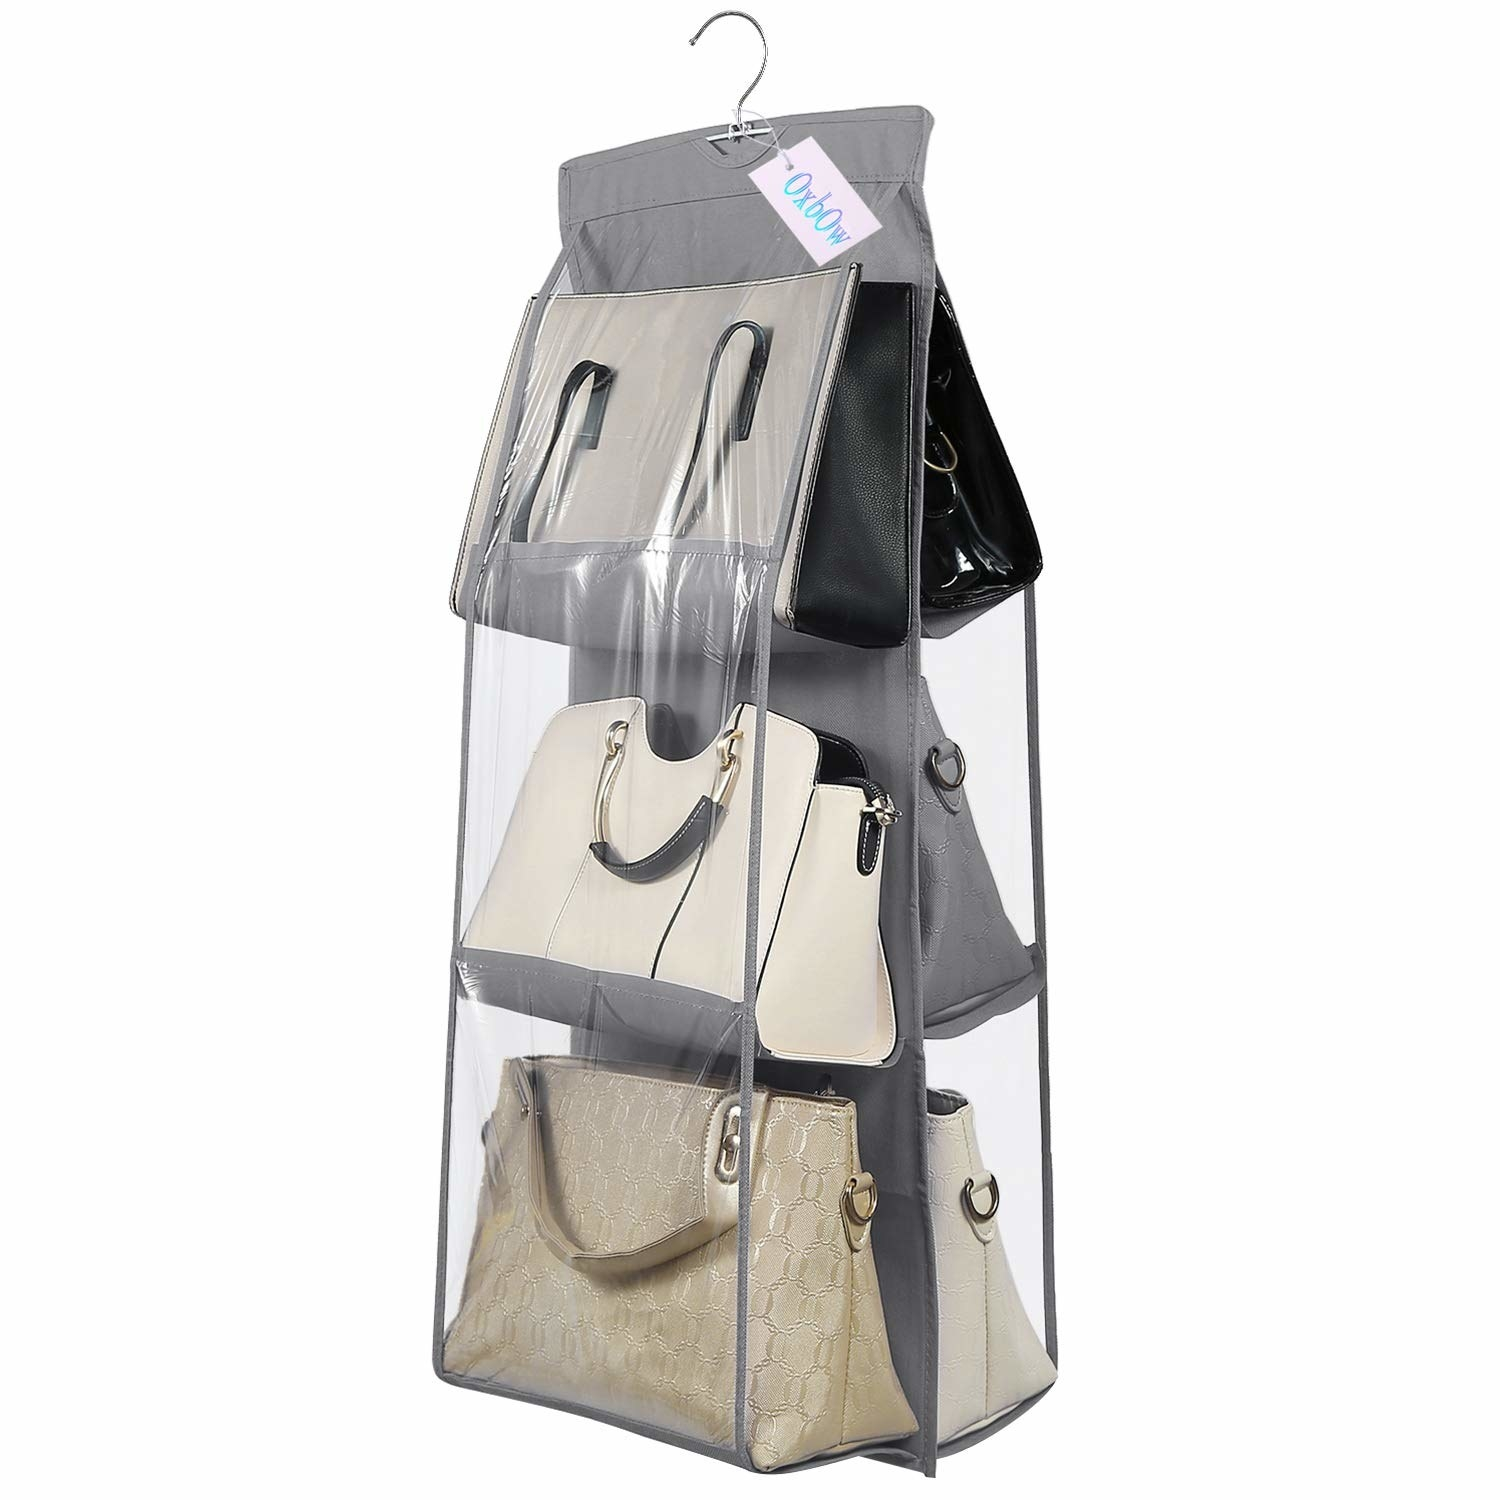 Grey hanging bag organiser. It comprises of large transparent pouches for storing handbags.